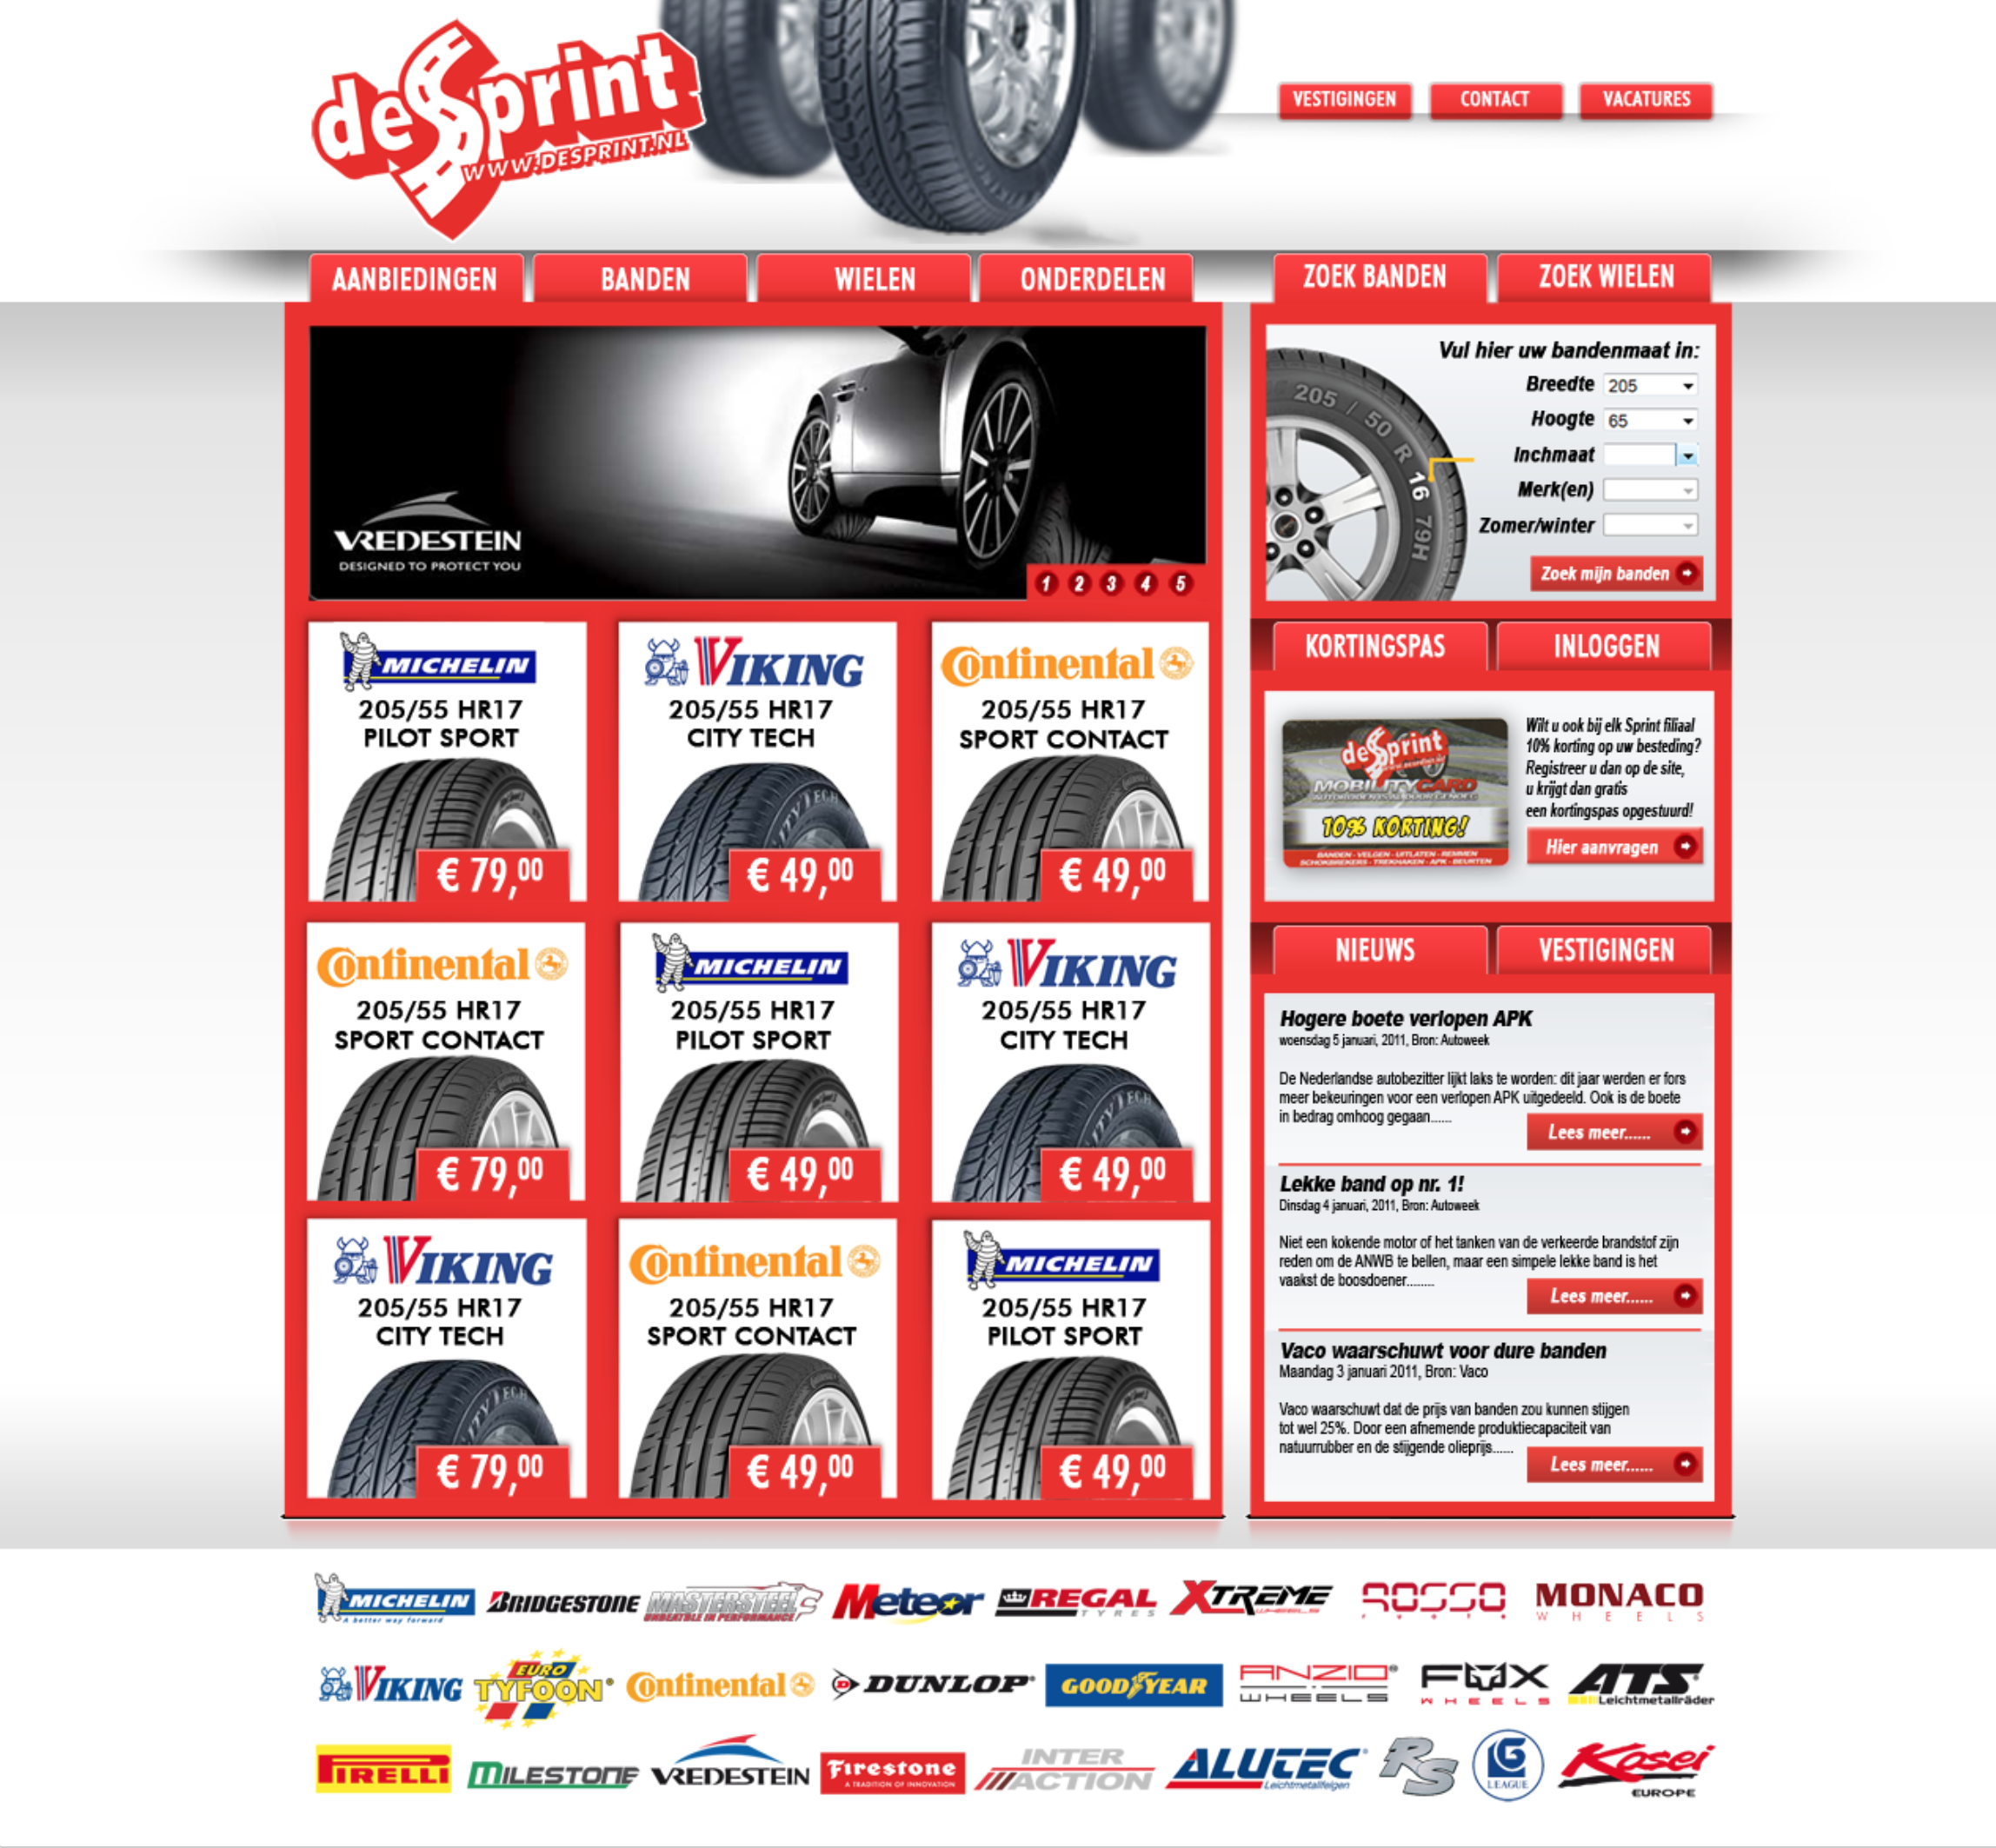 DeSprint website